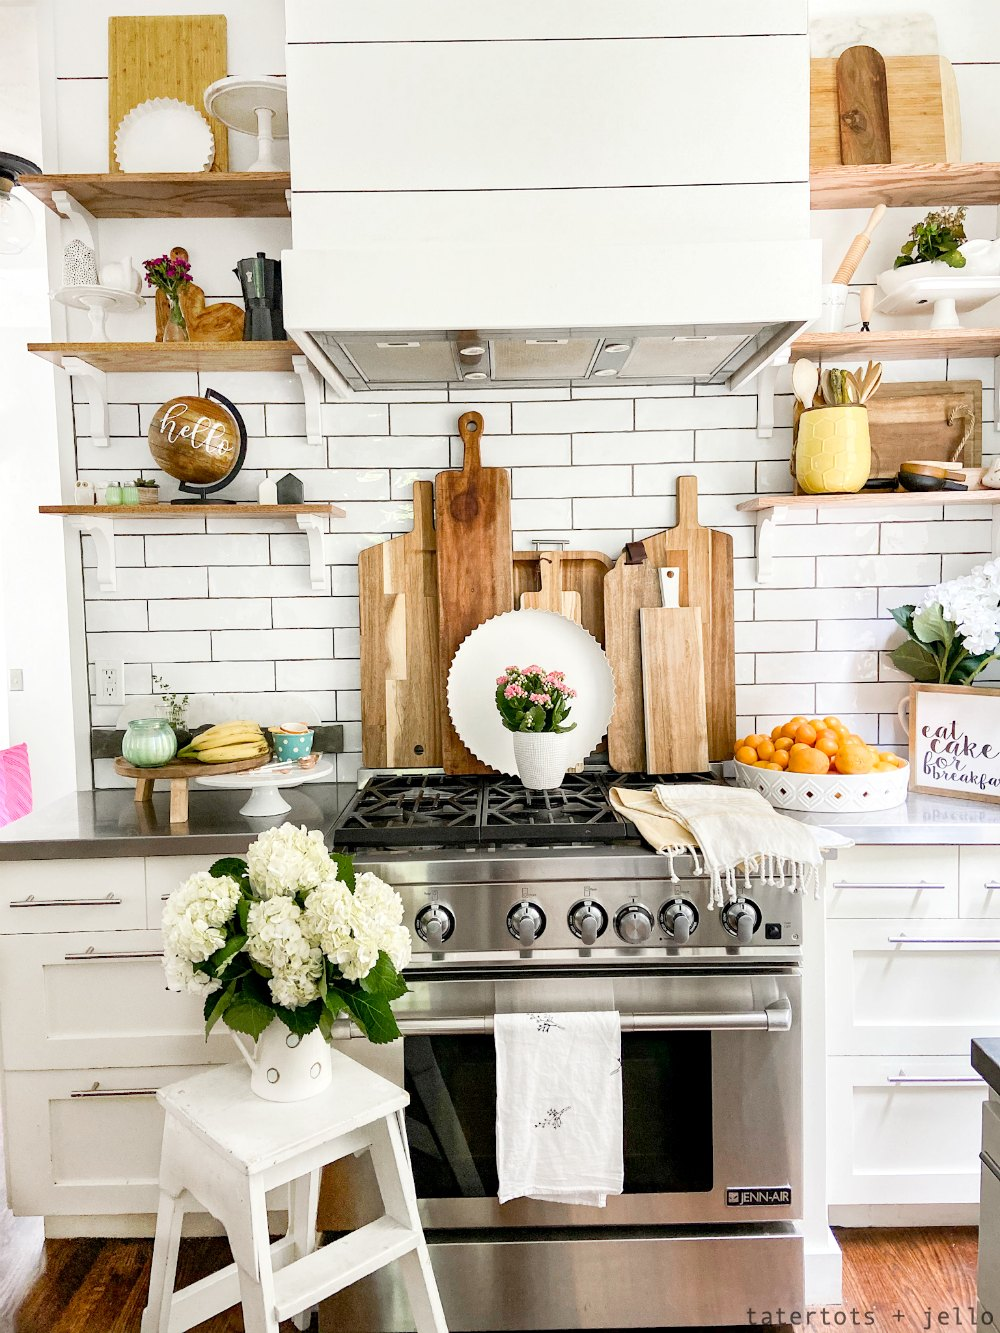 Boho cottage kitchen shelves. Boho Cottage Summer Home Tour. Bring a little boho summer color and flair to your cottage home with these bright and happy ideas!